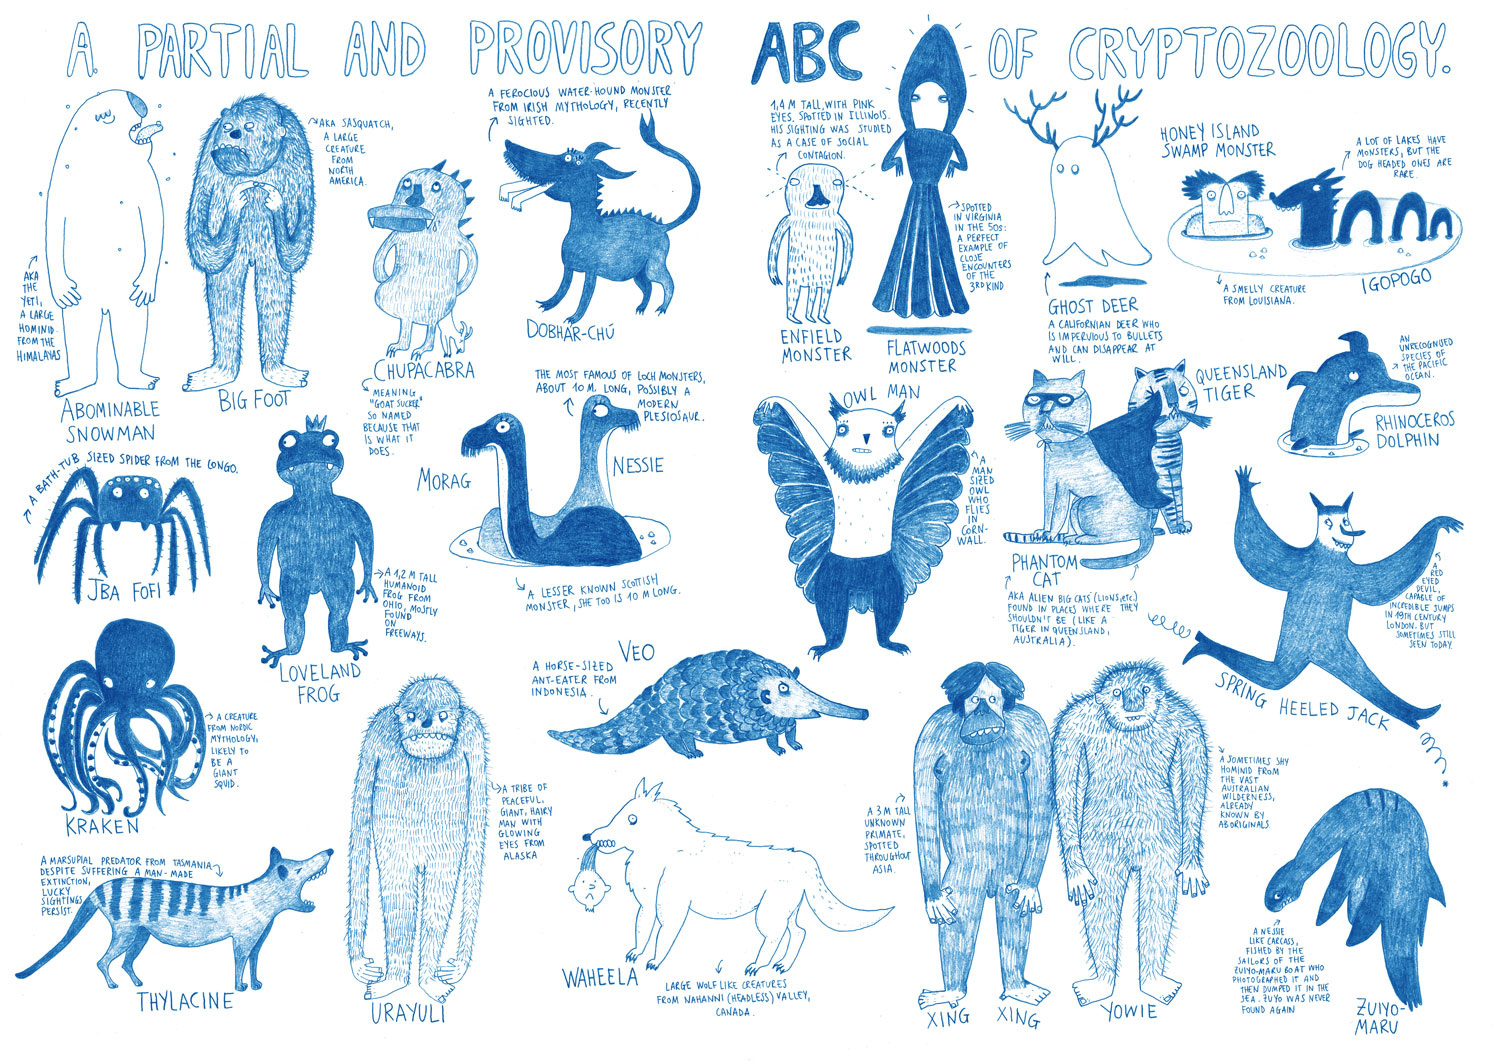 ABC cryptozoology  ralpi